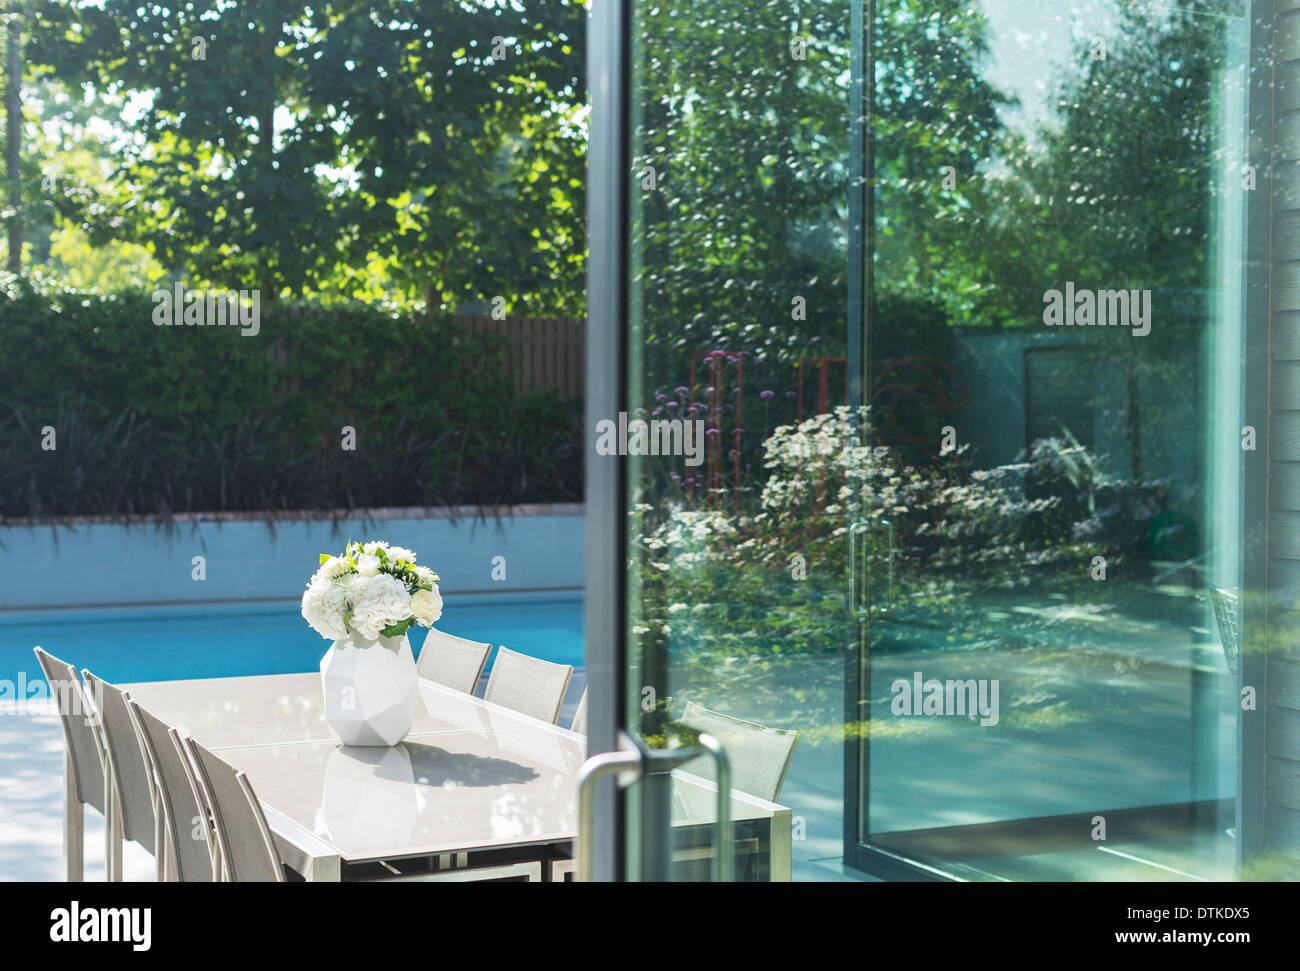 Table and chairs by swimming pool - Stock Image